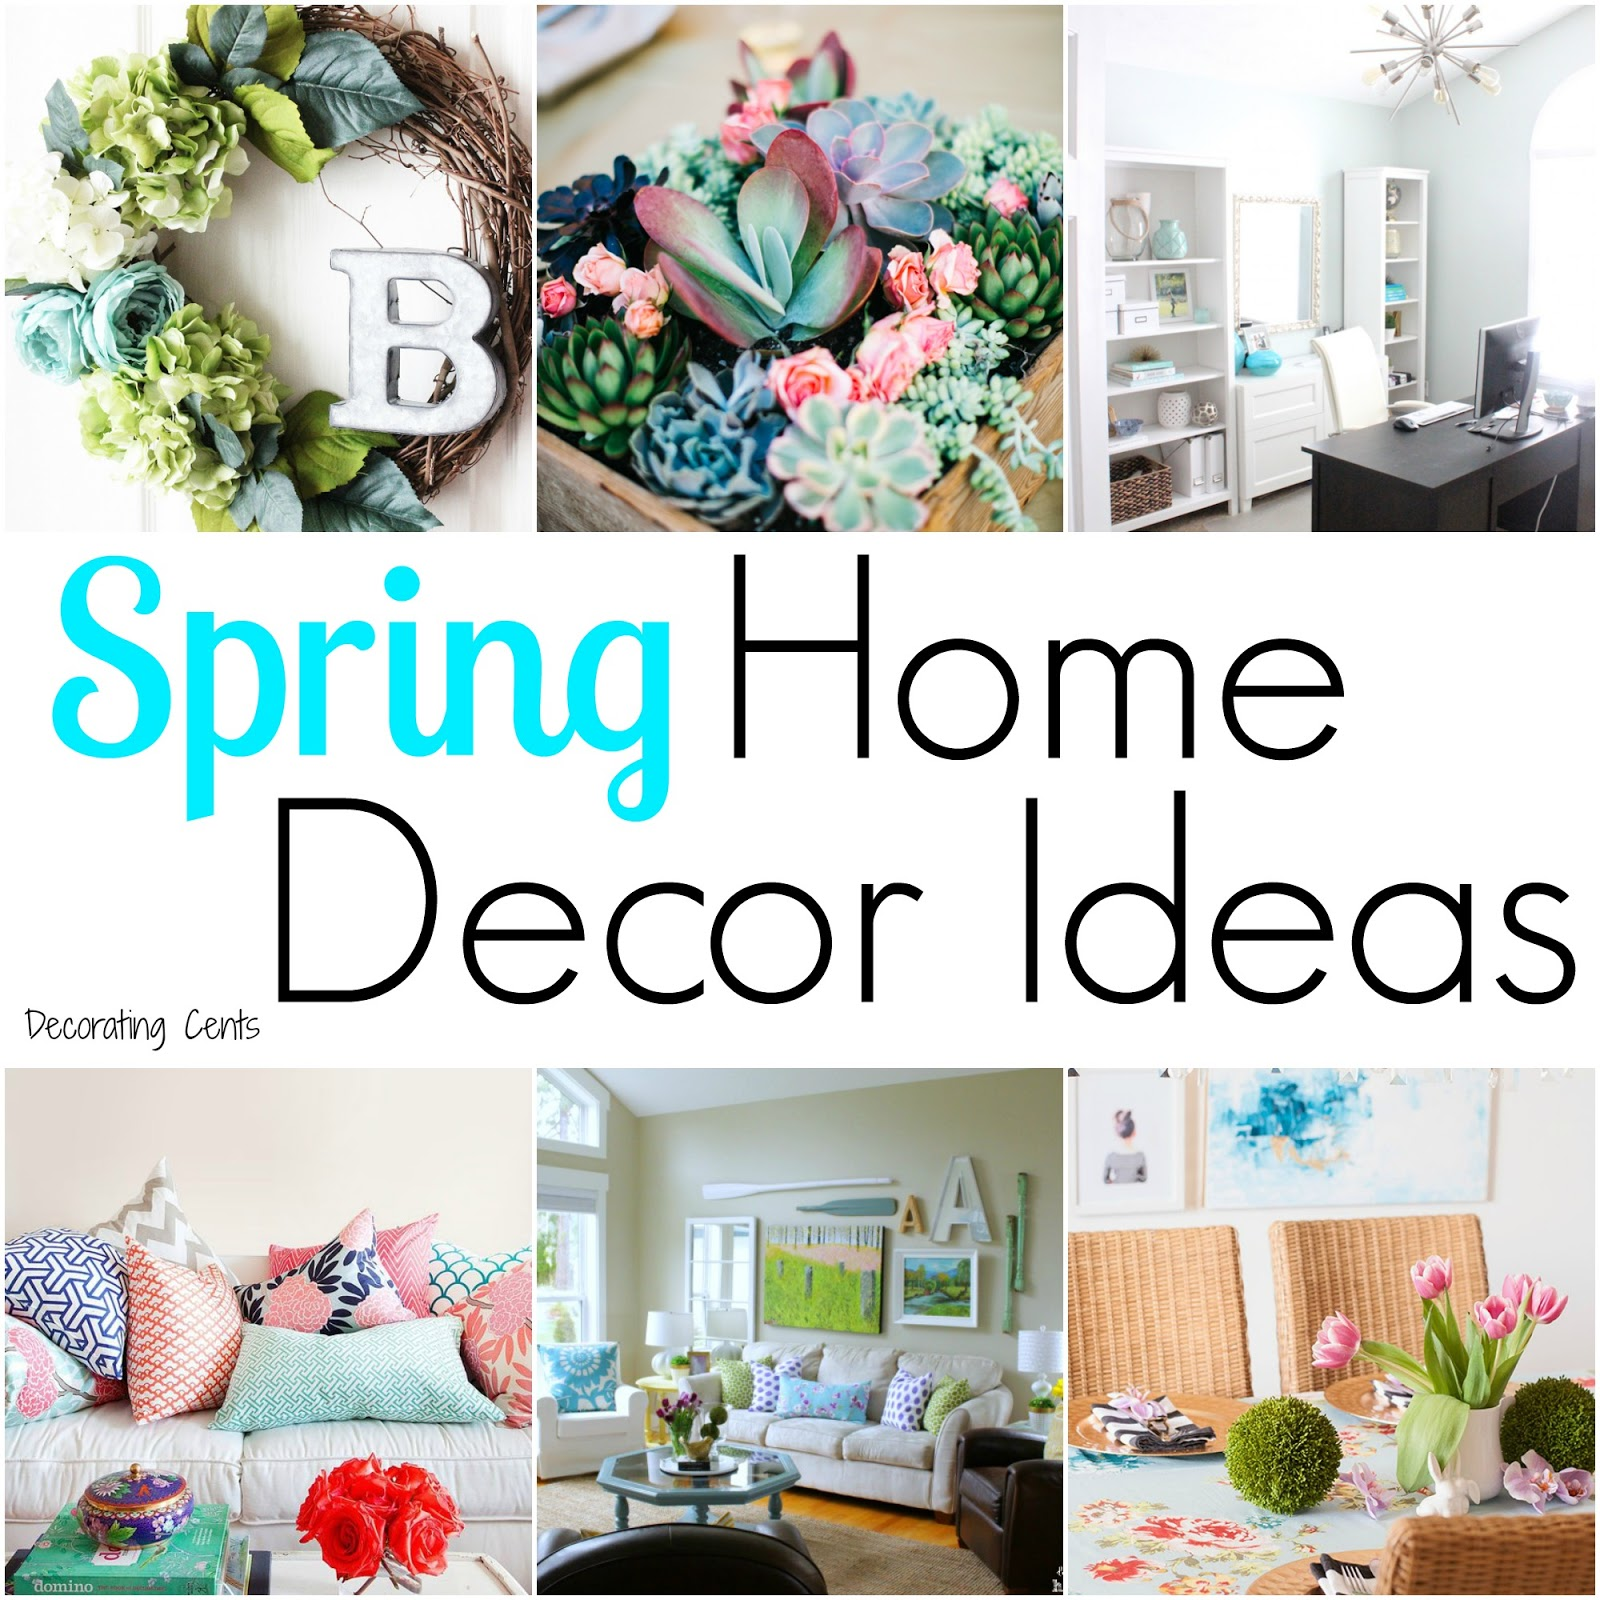 House Decorating Ideas Spring Spring Home Decor Ideas House ...